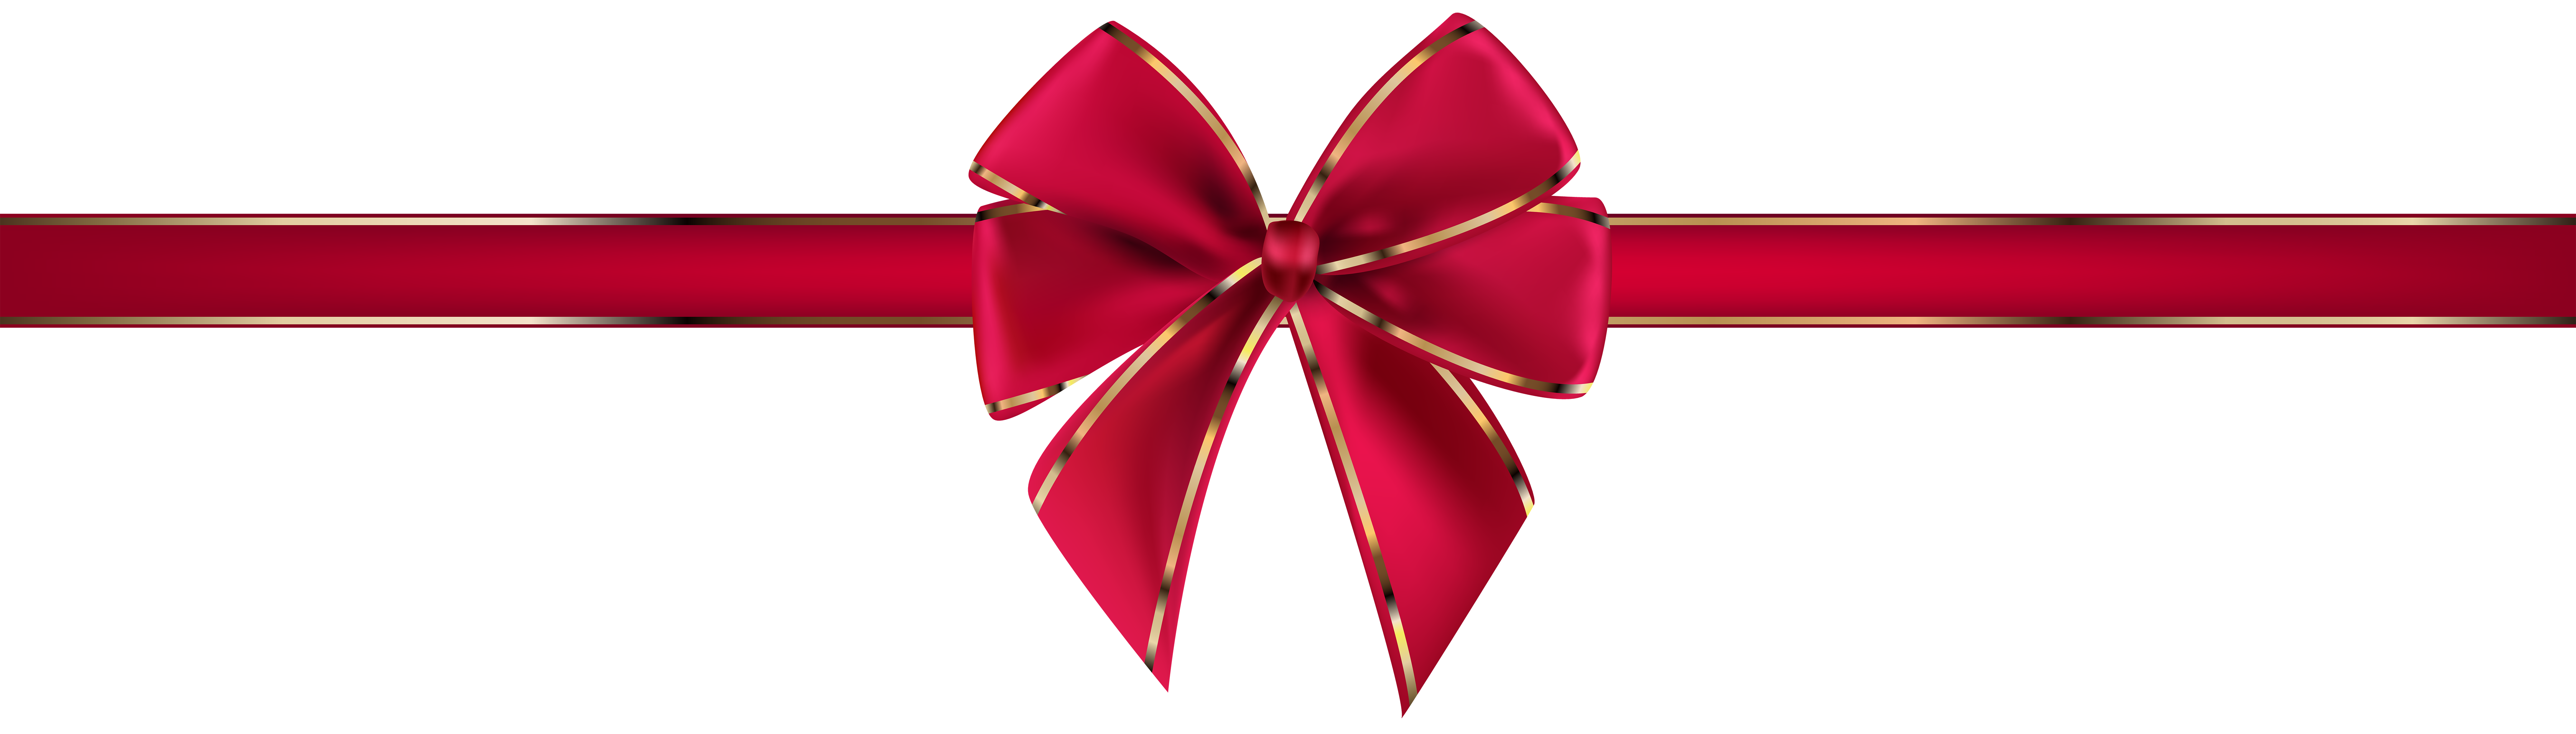 Clipart bow present bow. Beautiful png clip art